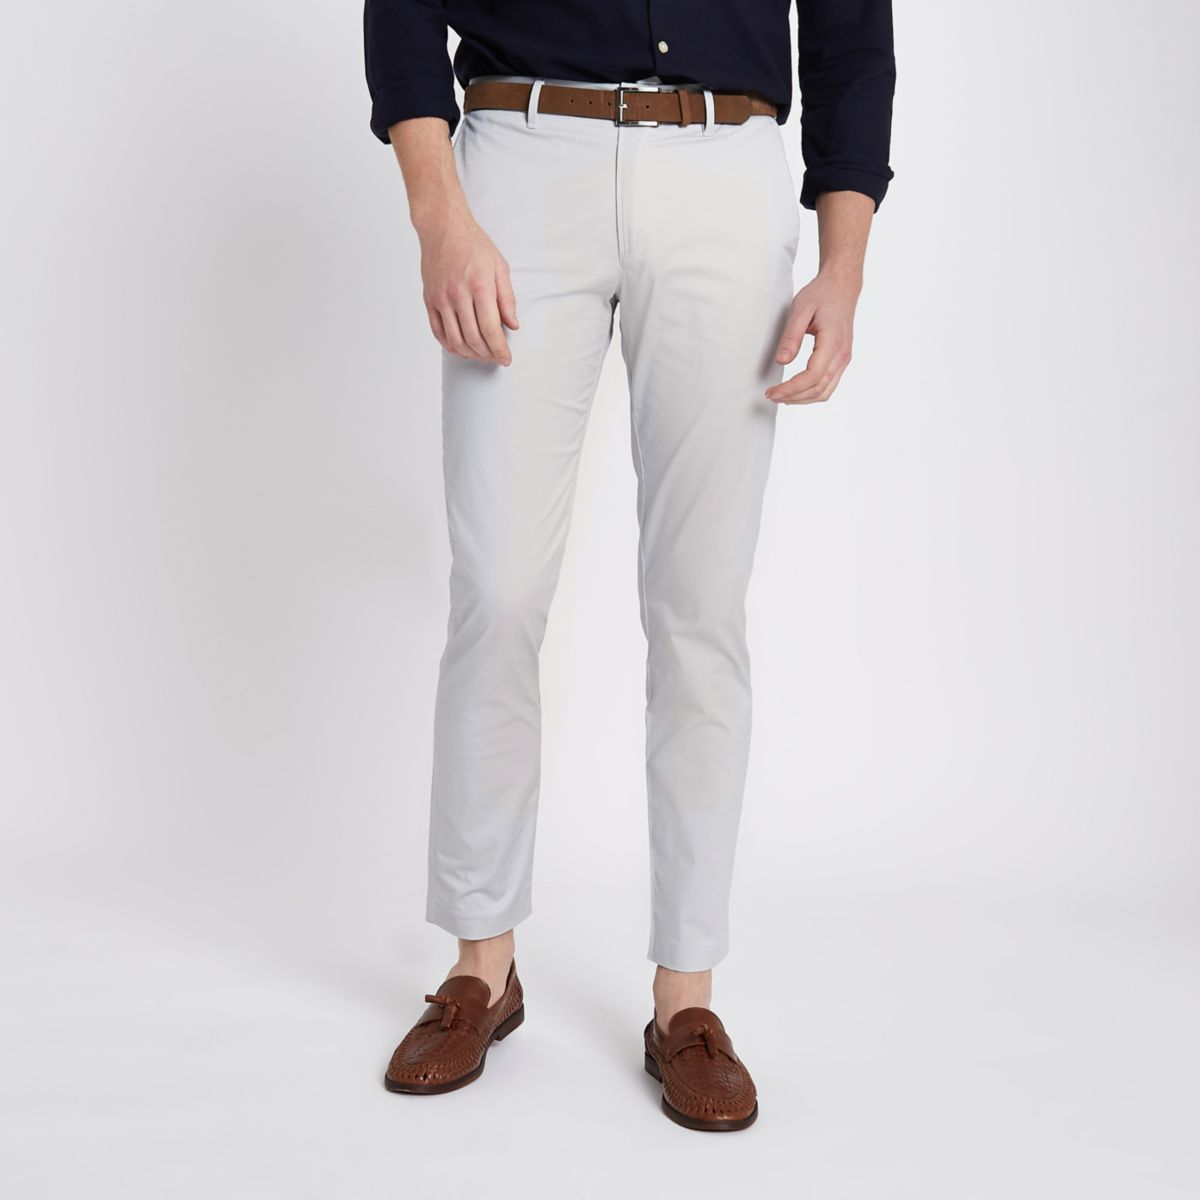 Buy our Grey slim fit flat front non-iron chinos exclusively from Charles Tyrwhitt of Jermyn Street, London. Available for international delivery.